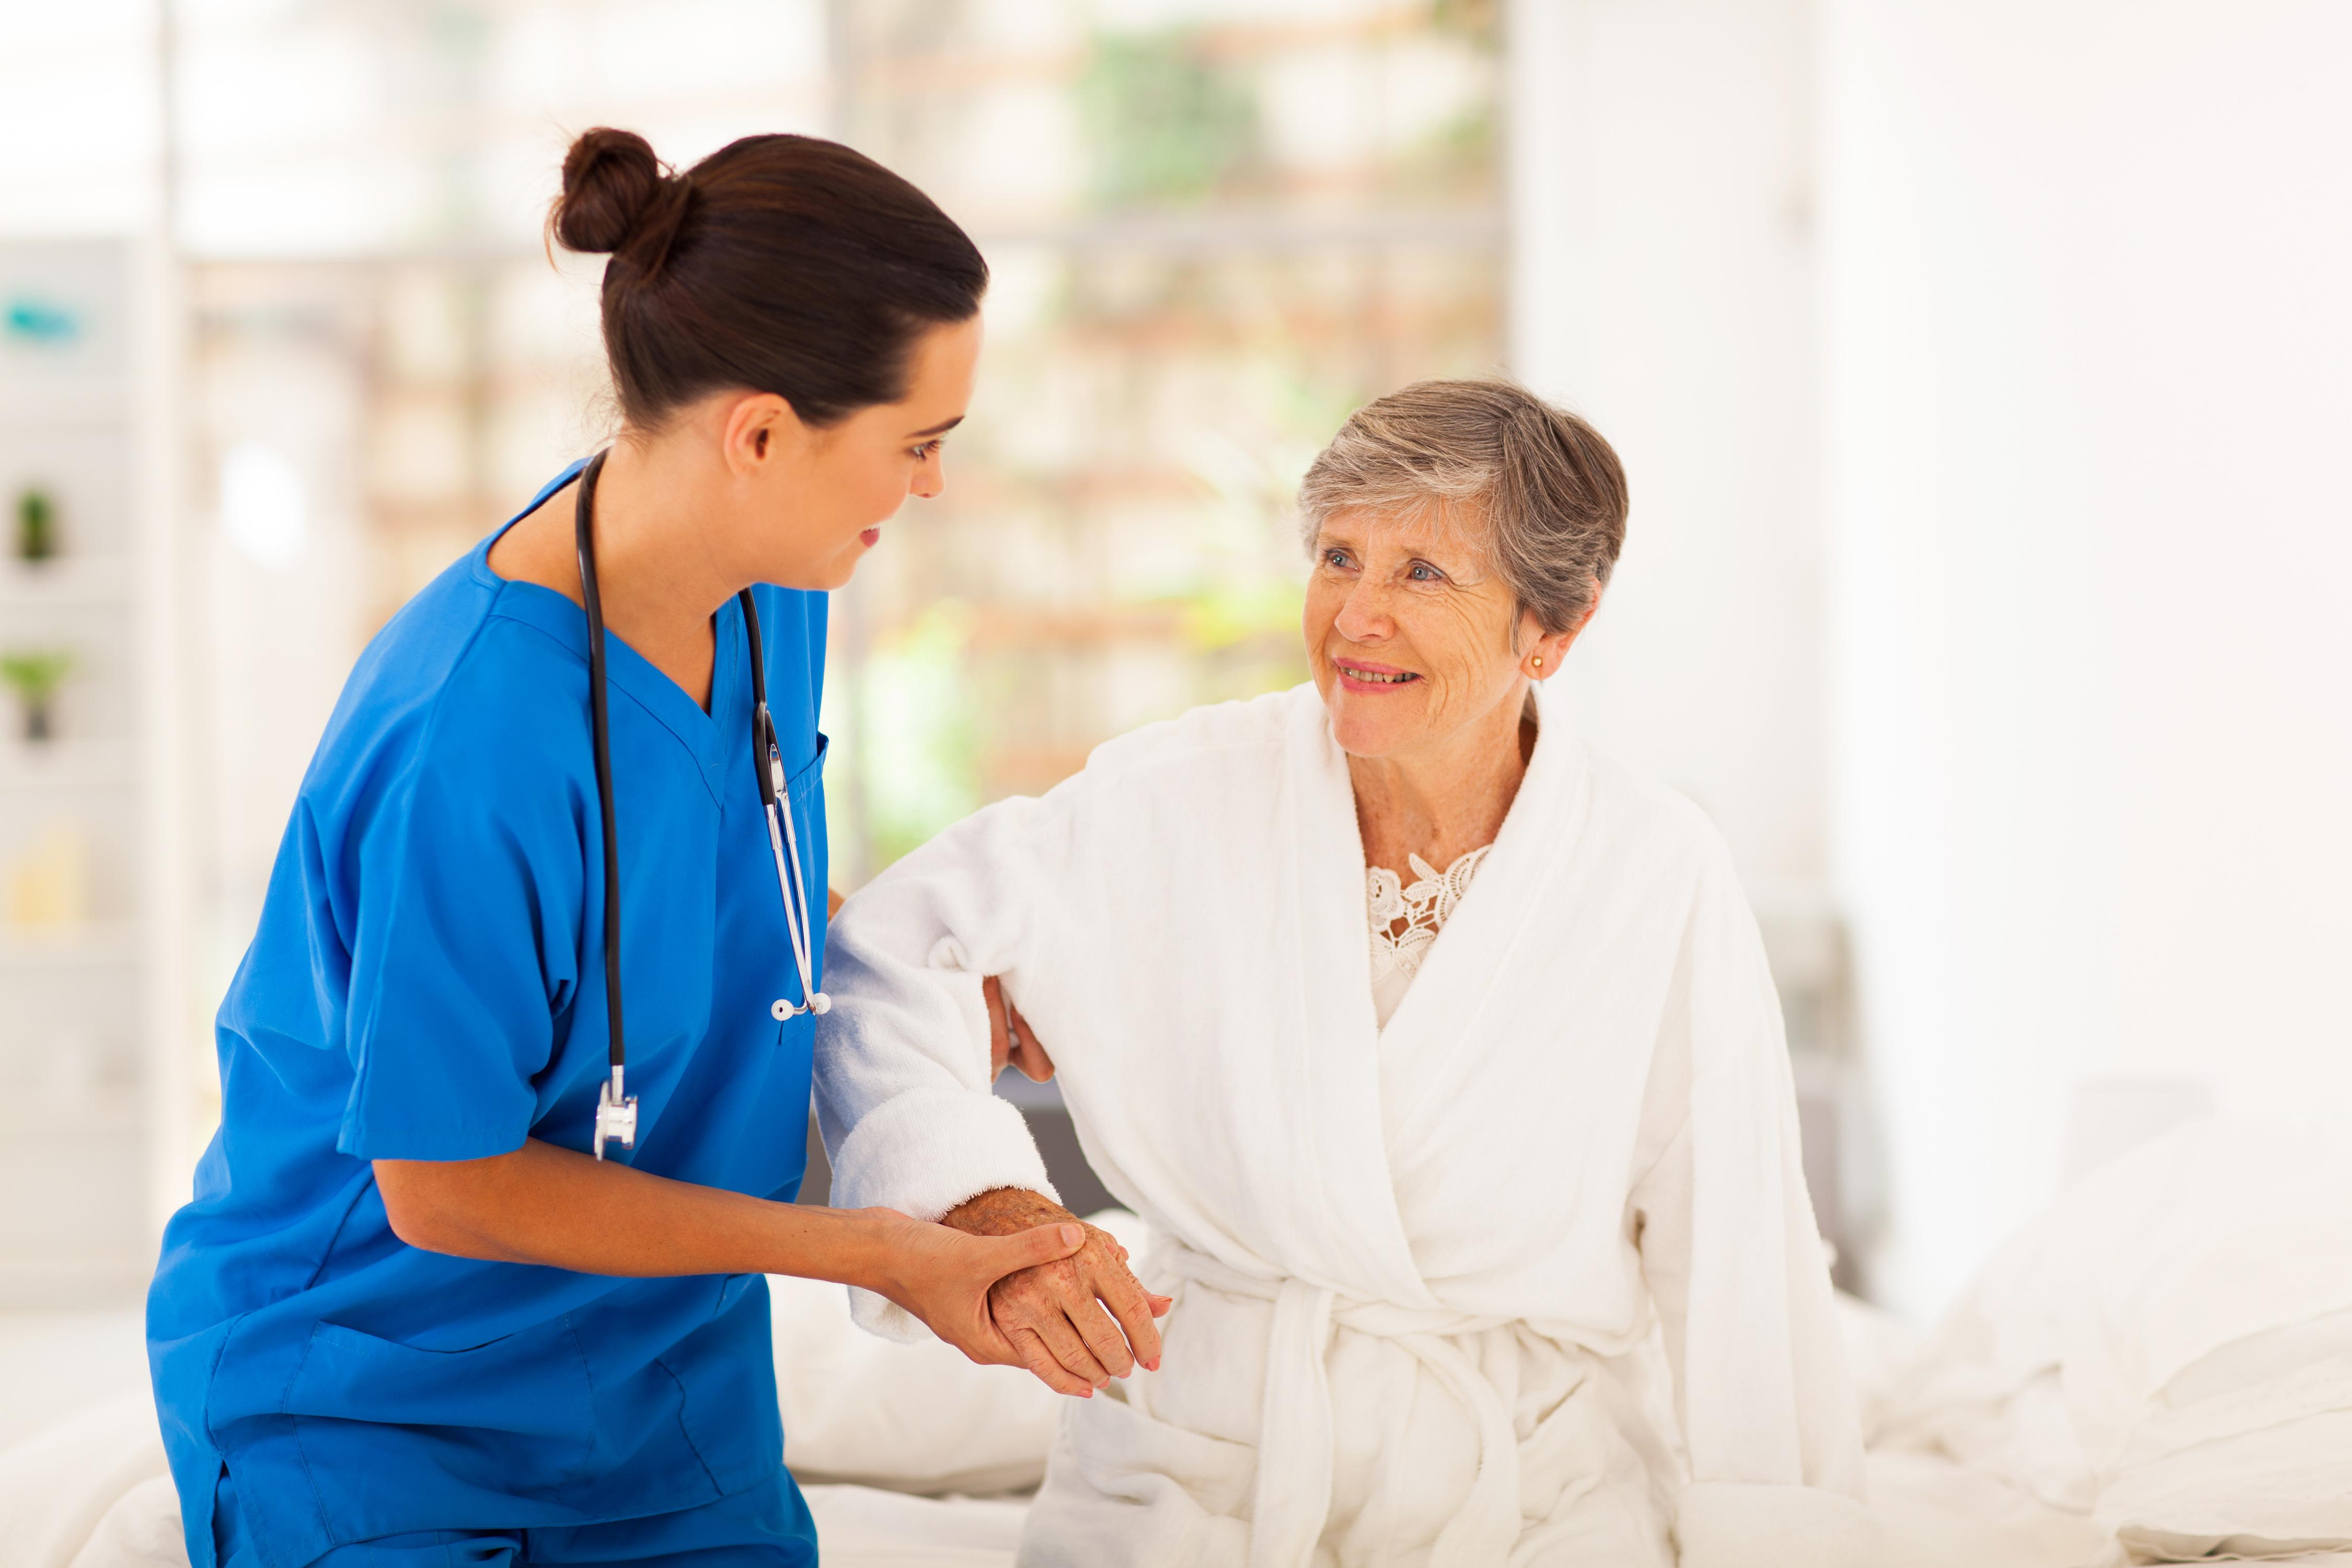 the duty of care The phrase duty of care is, at best, too vague and, at worst, ethically dangerous the nature and scope of the duty need to be determined, and conflicting duties must be recognized and acknowledged.